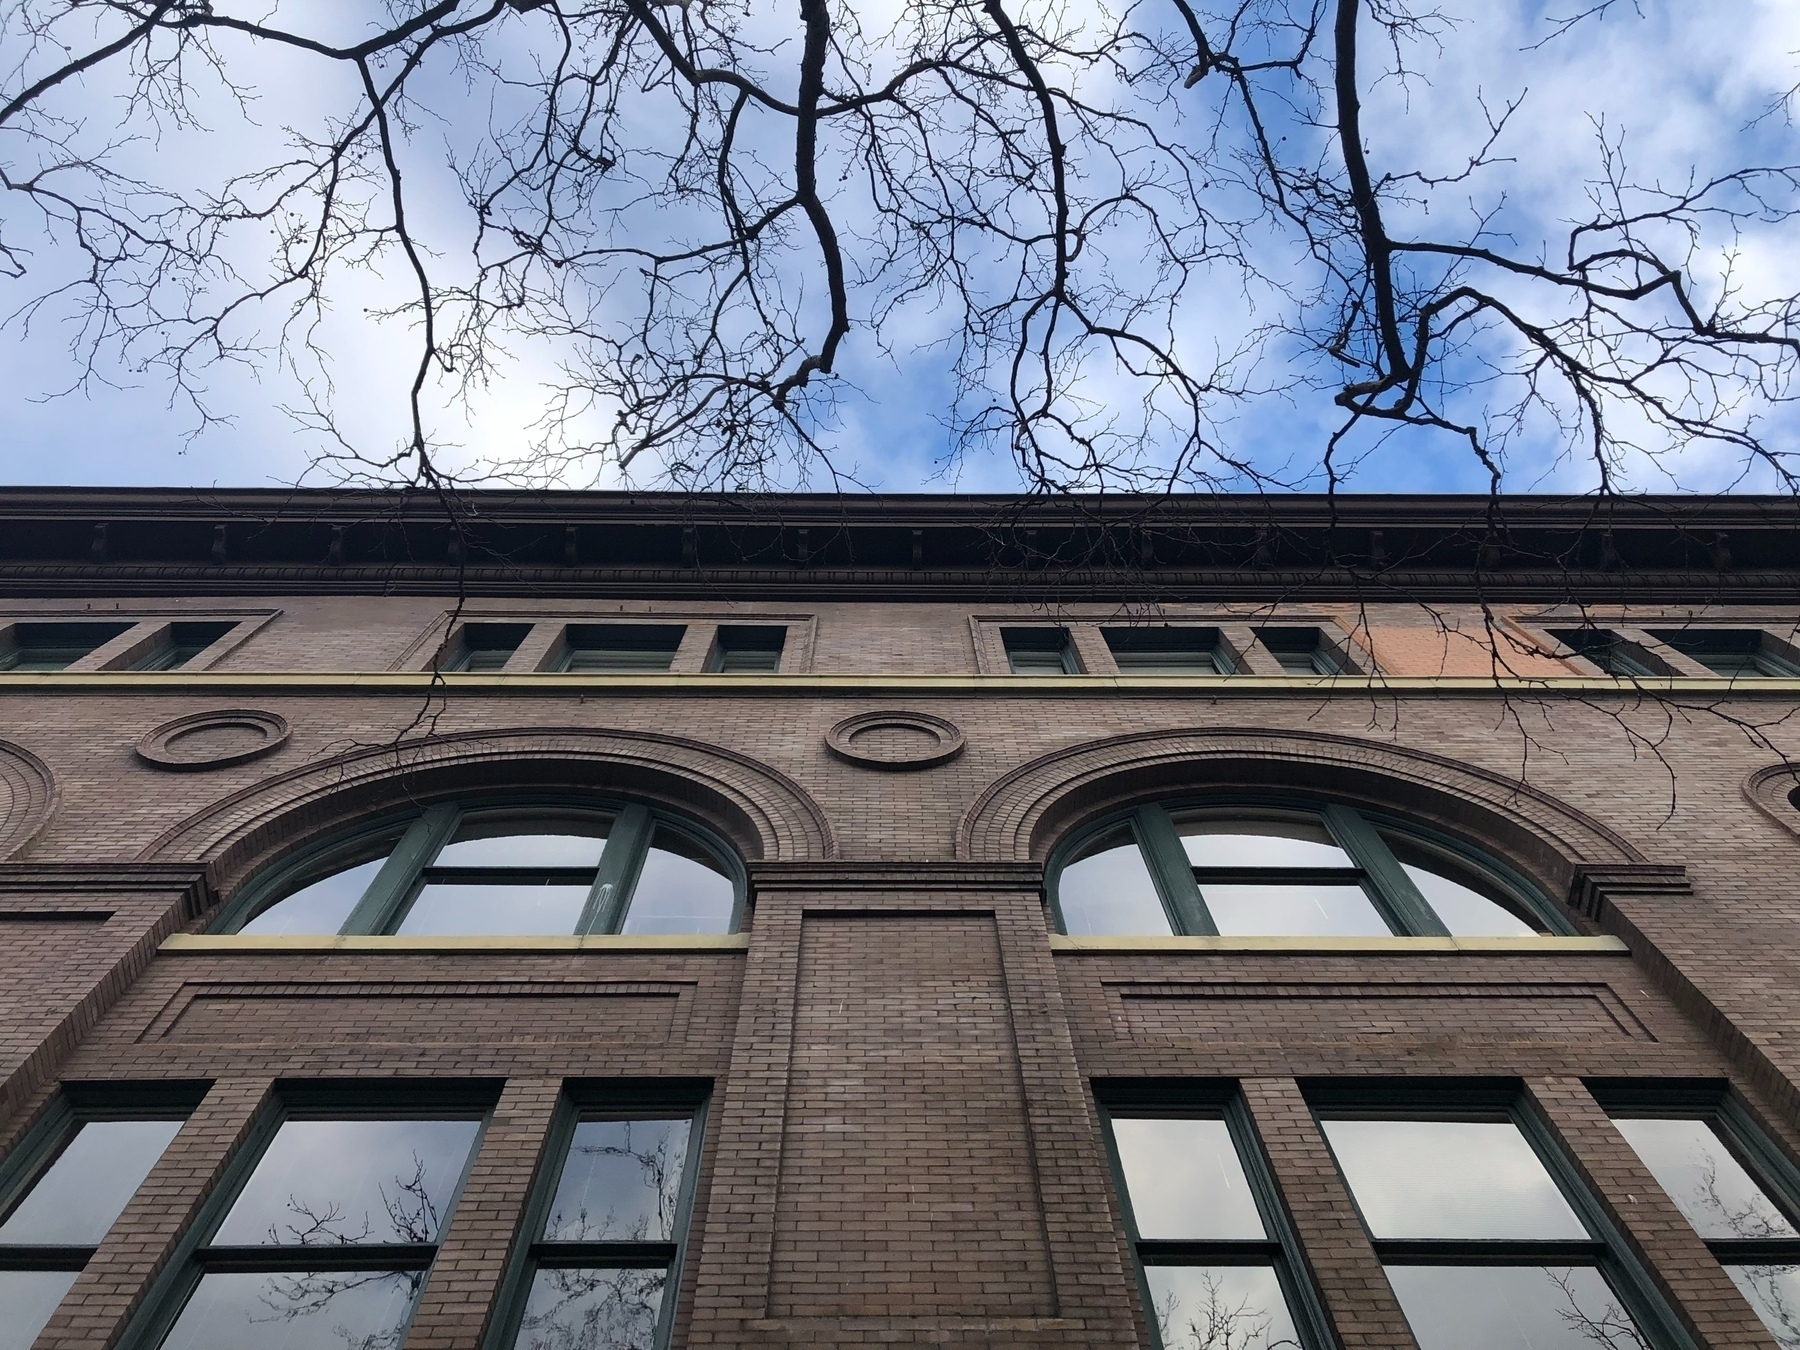 A winter sky peeps above the dramatic arched windows in an old-style brick building.